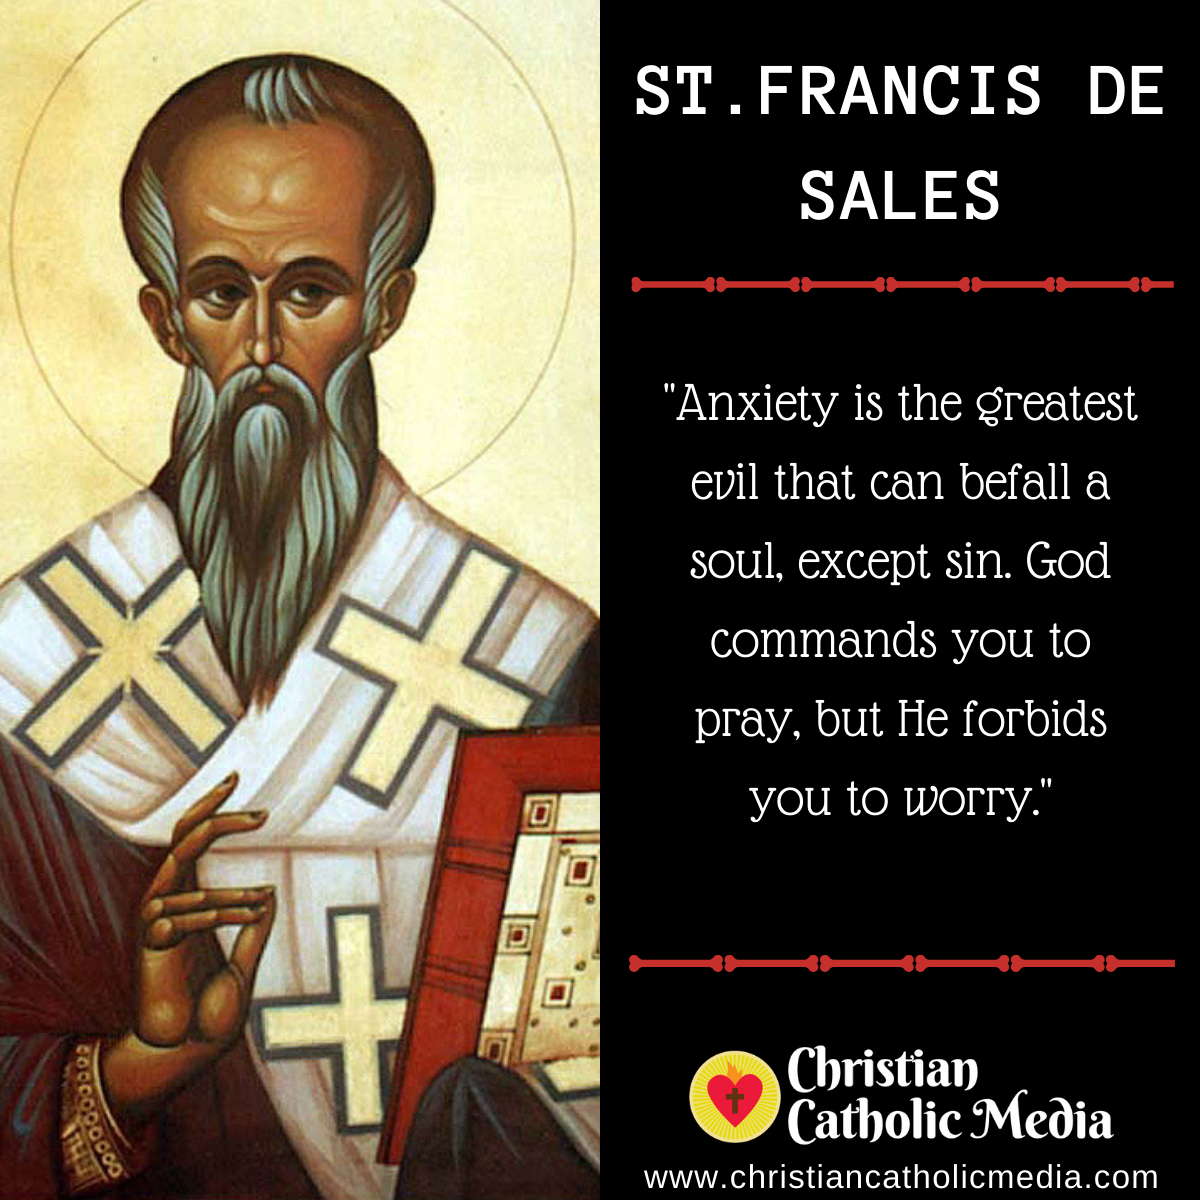 St. Francis de Sales - Friday January 24, 2020